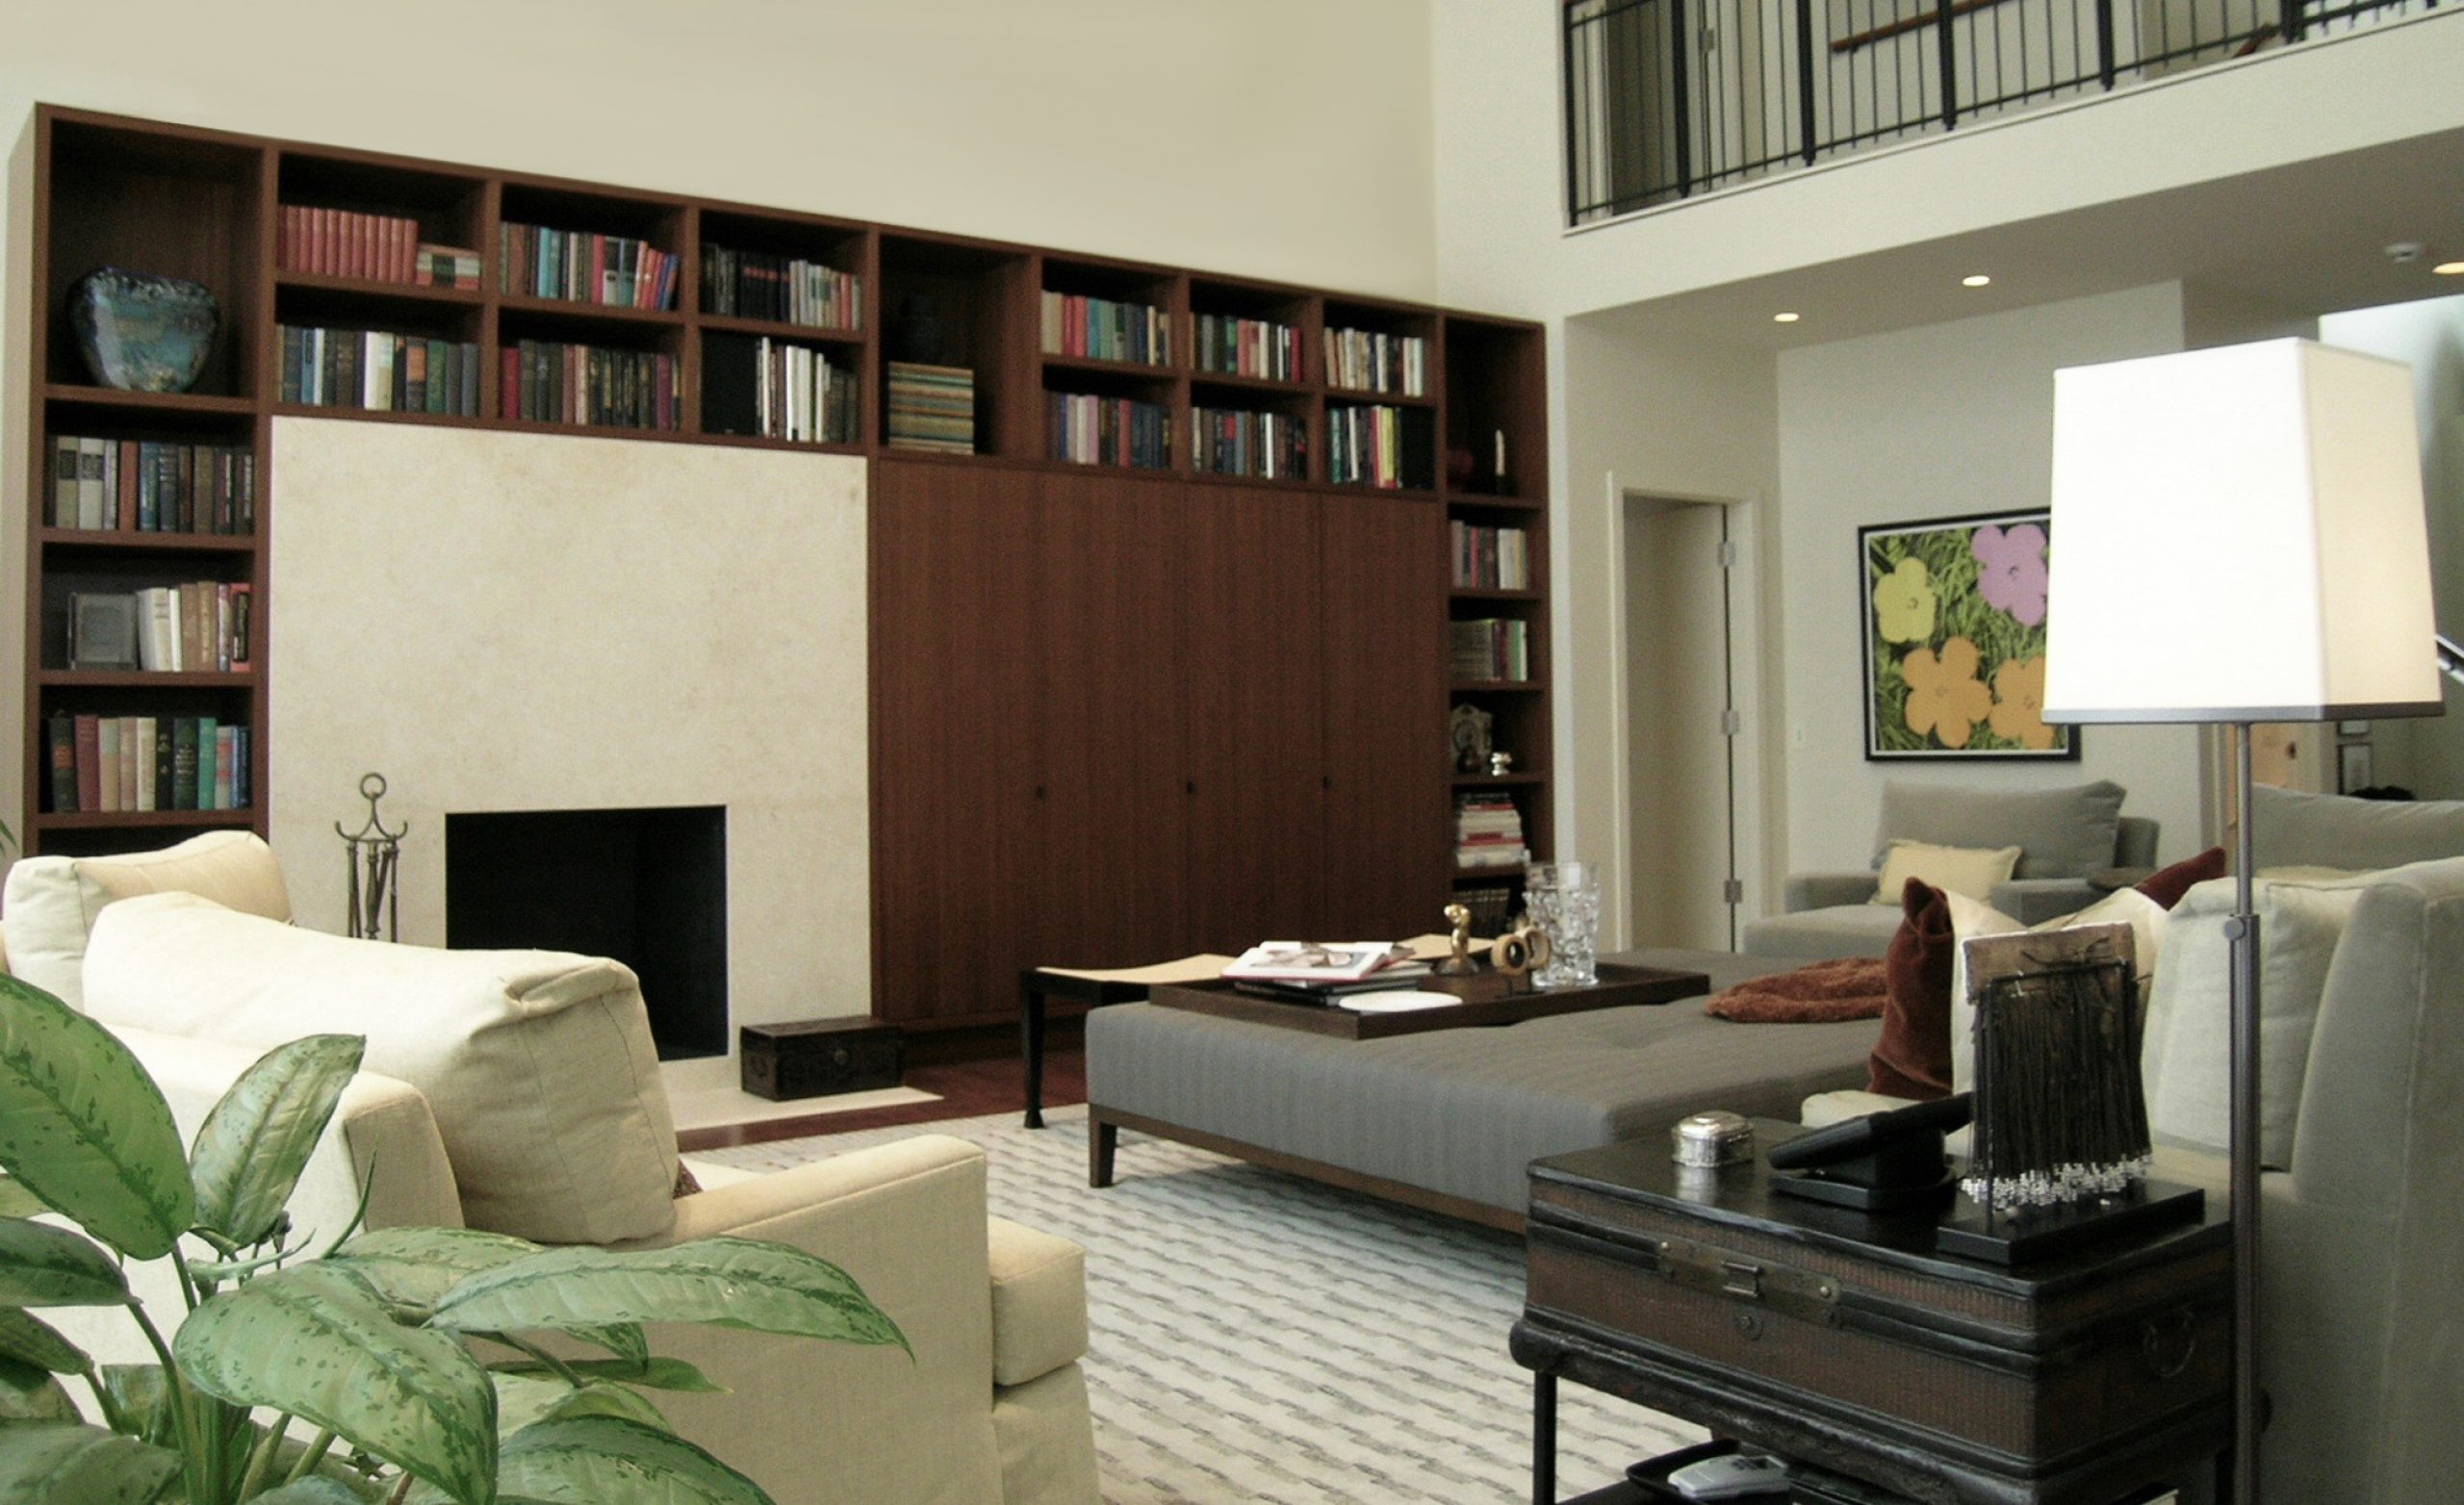 Great room with fireplace and built-in bookcase and storage